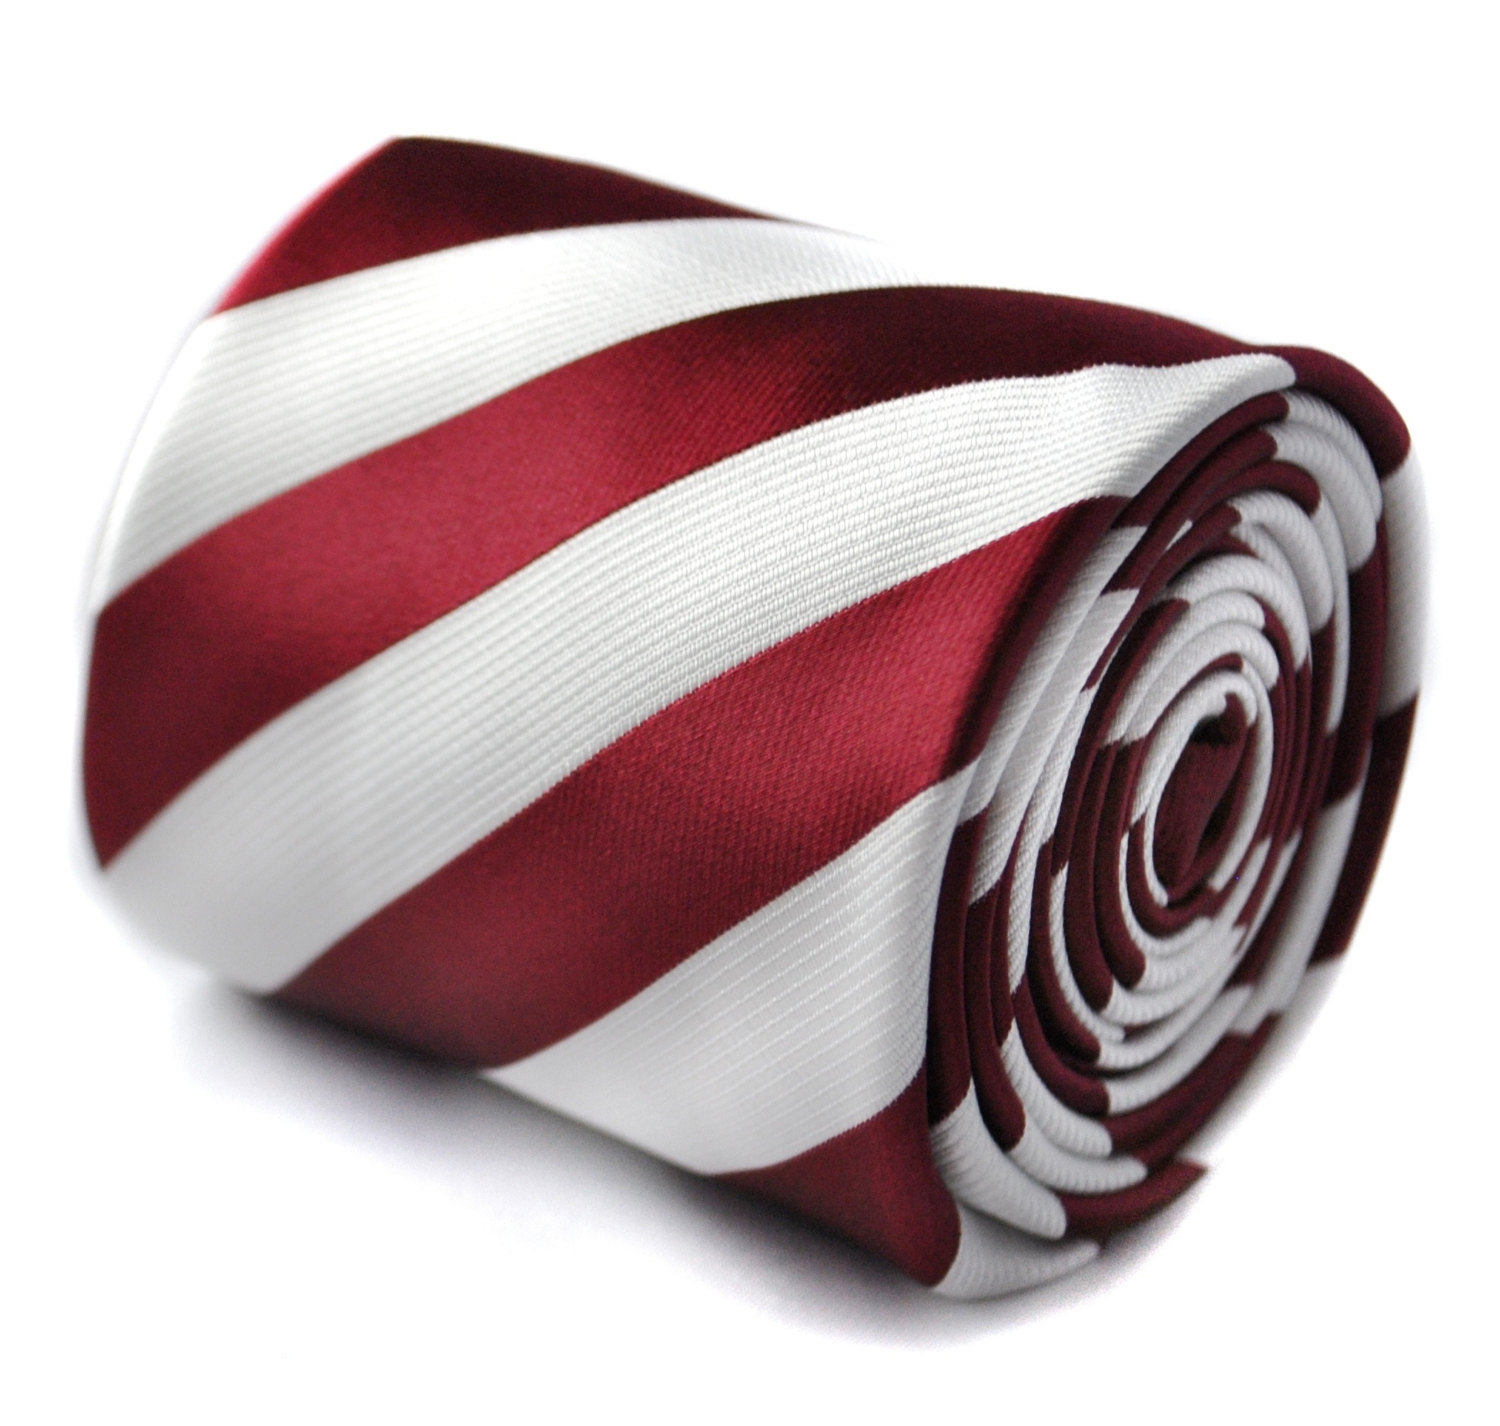 maroon and white striped tie with floral design to the rear by Frederick Thomas